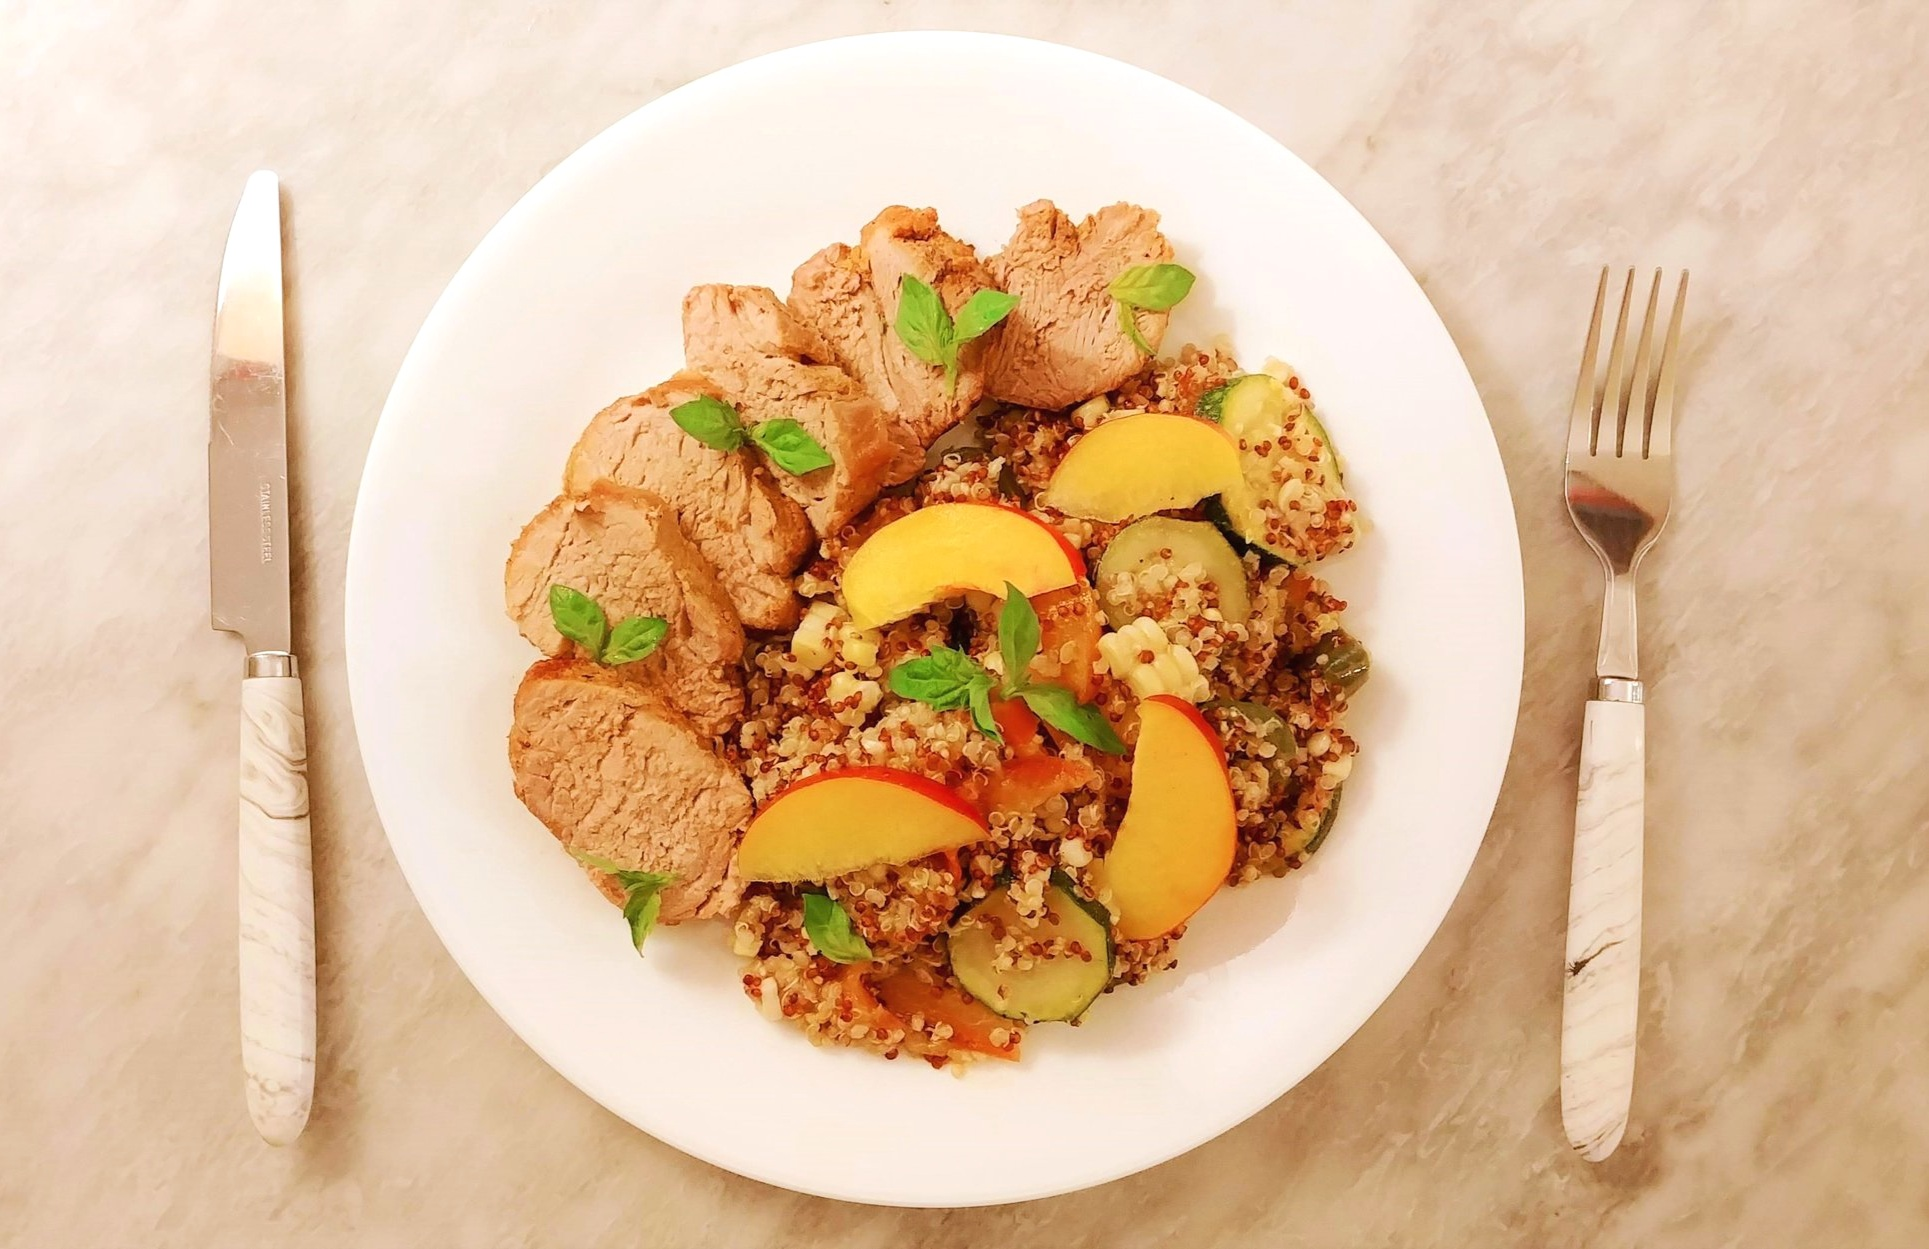 Pork Tenderloin with Peach, Basil & Jalapeno Quinoa. Recipe by Alison Mountford for the Ends+Stems web-app. Photography by Sandy Daenerys.